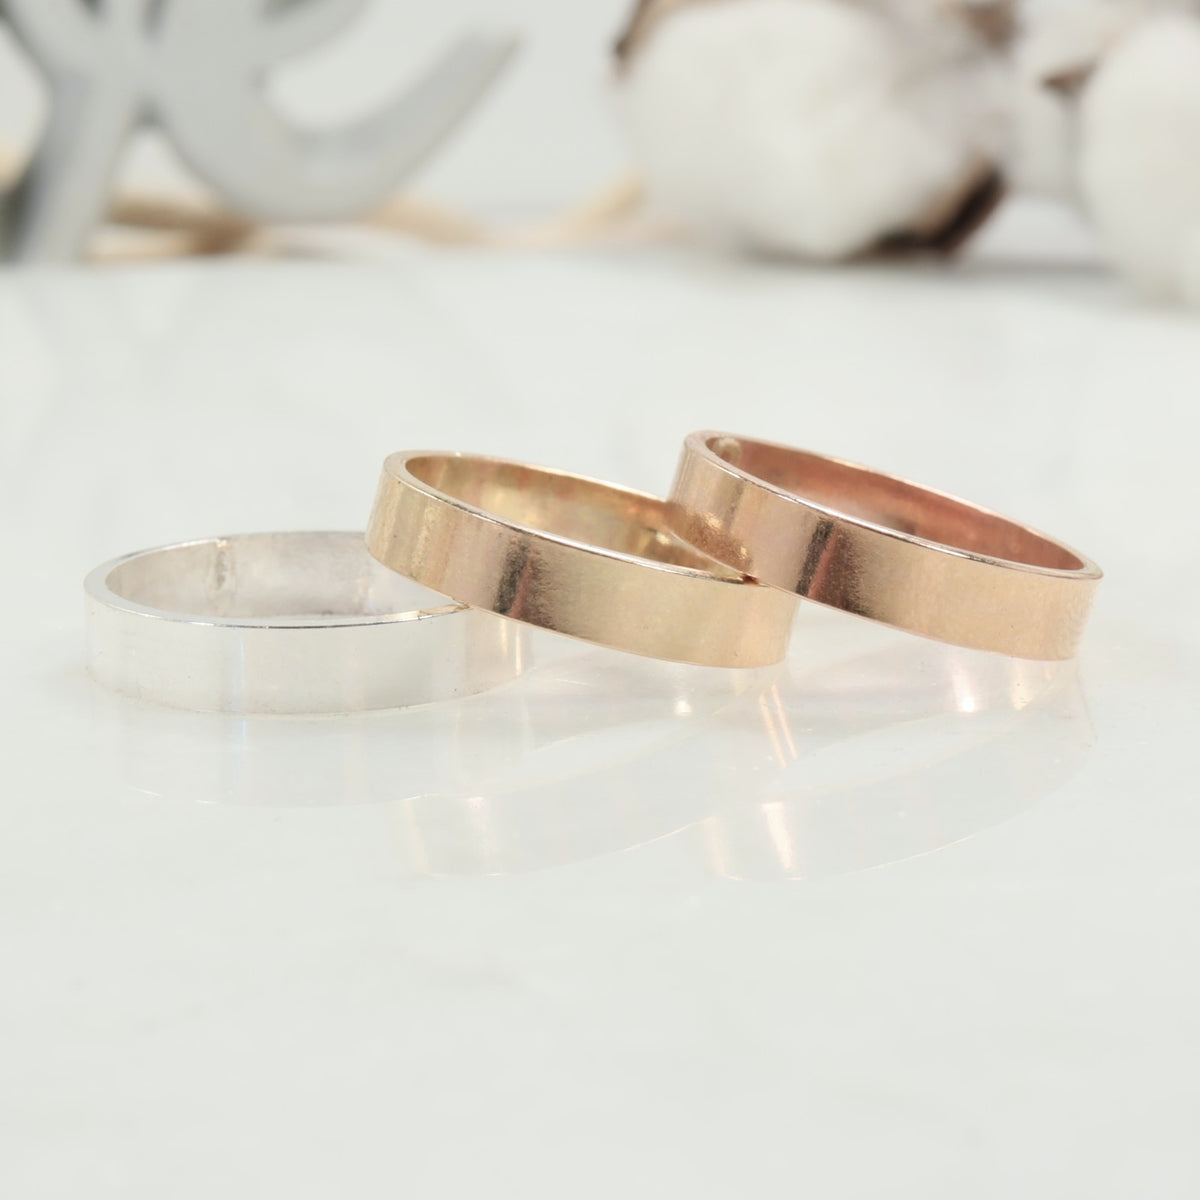 engraving ring blanks silver, gold, pink gold